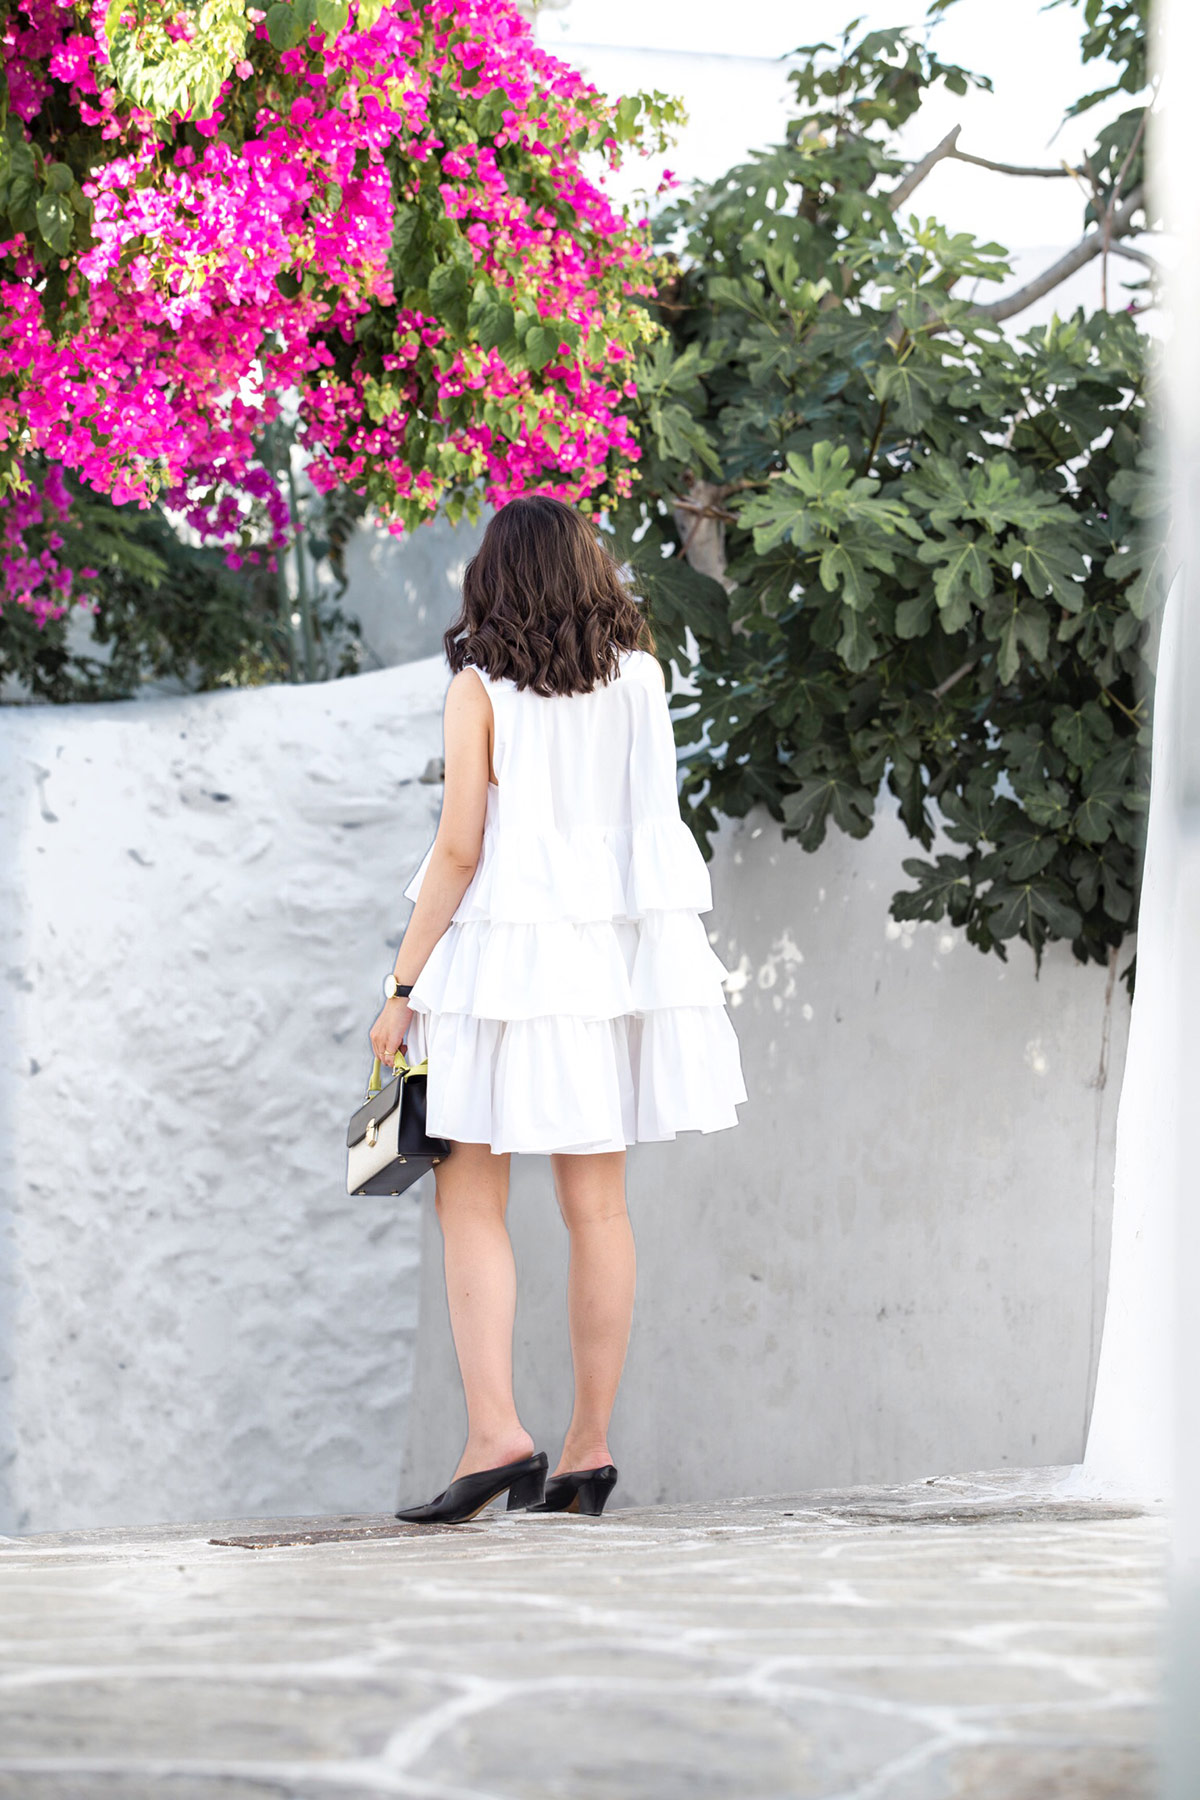 Stella Asteria, fashion & lifestyle blogger, wearing a little white frilled dress in Mykonos